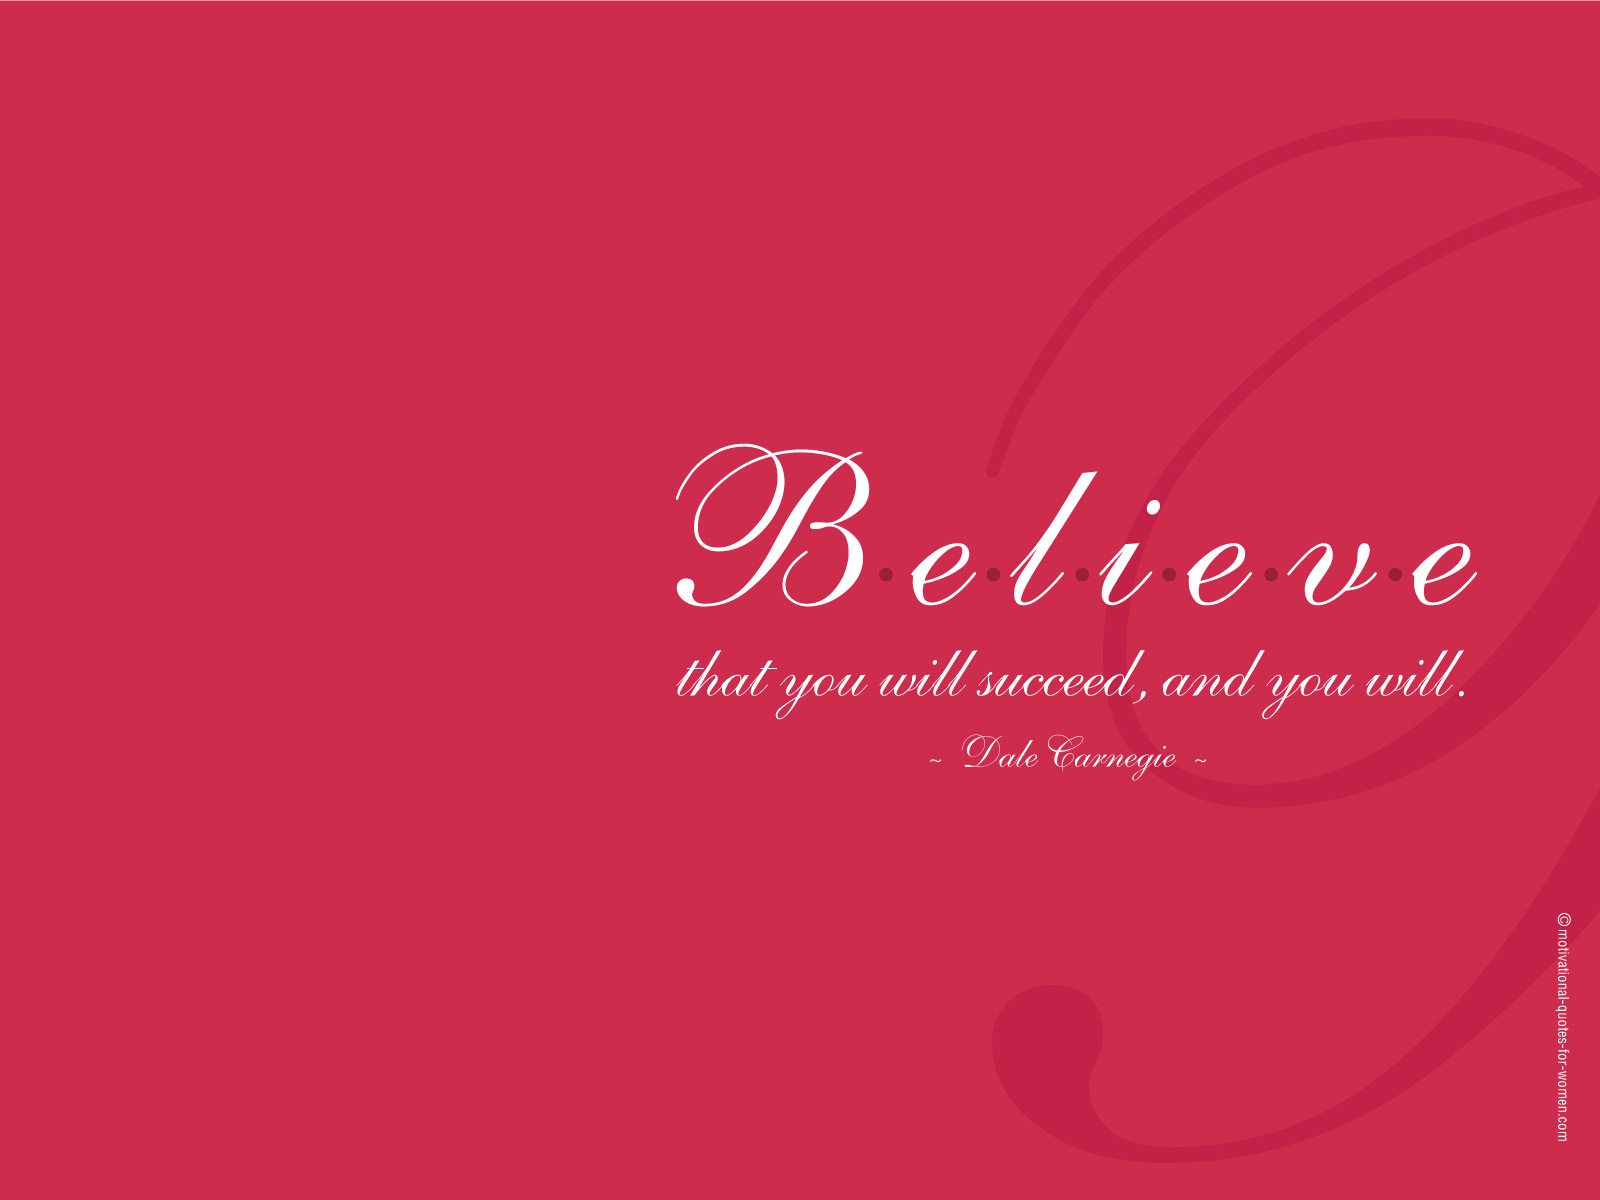 Inspirational Believe Quotes Wallpaper 3197 Inspiration   bwalles 1600x1200